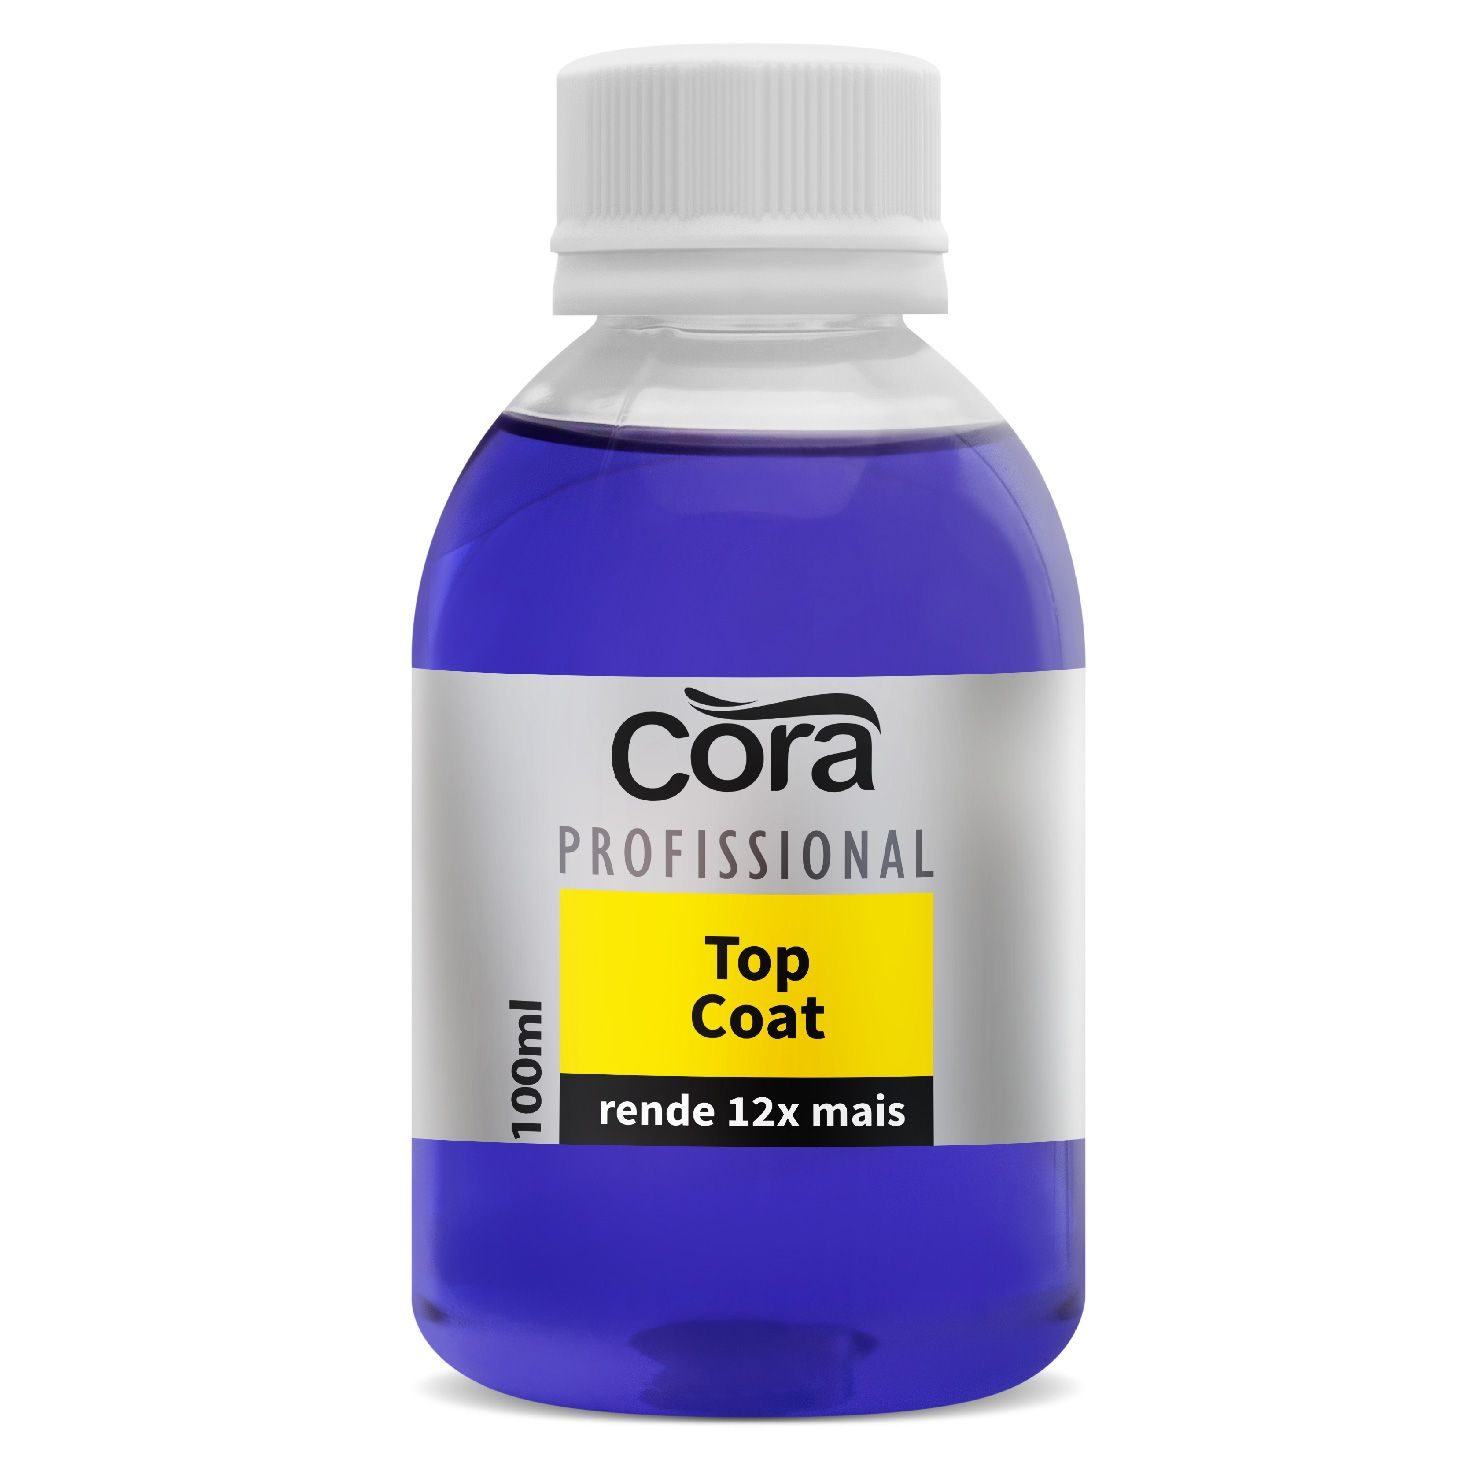 Base para unhas 100ml Cora Top Coat